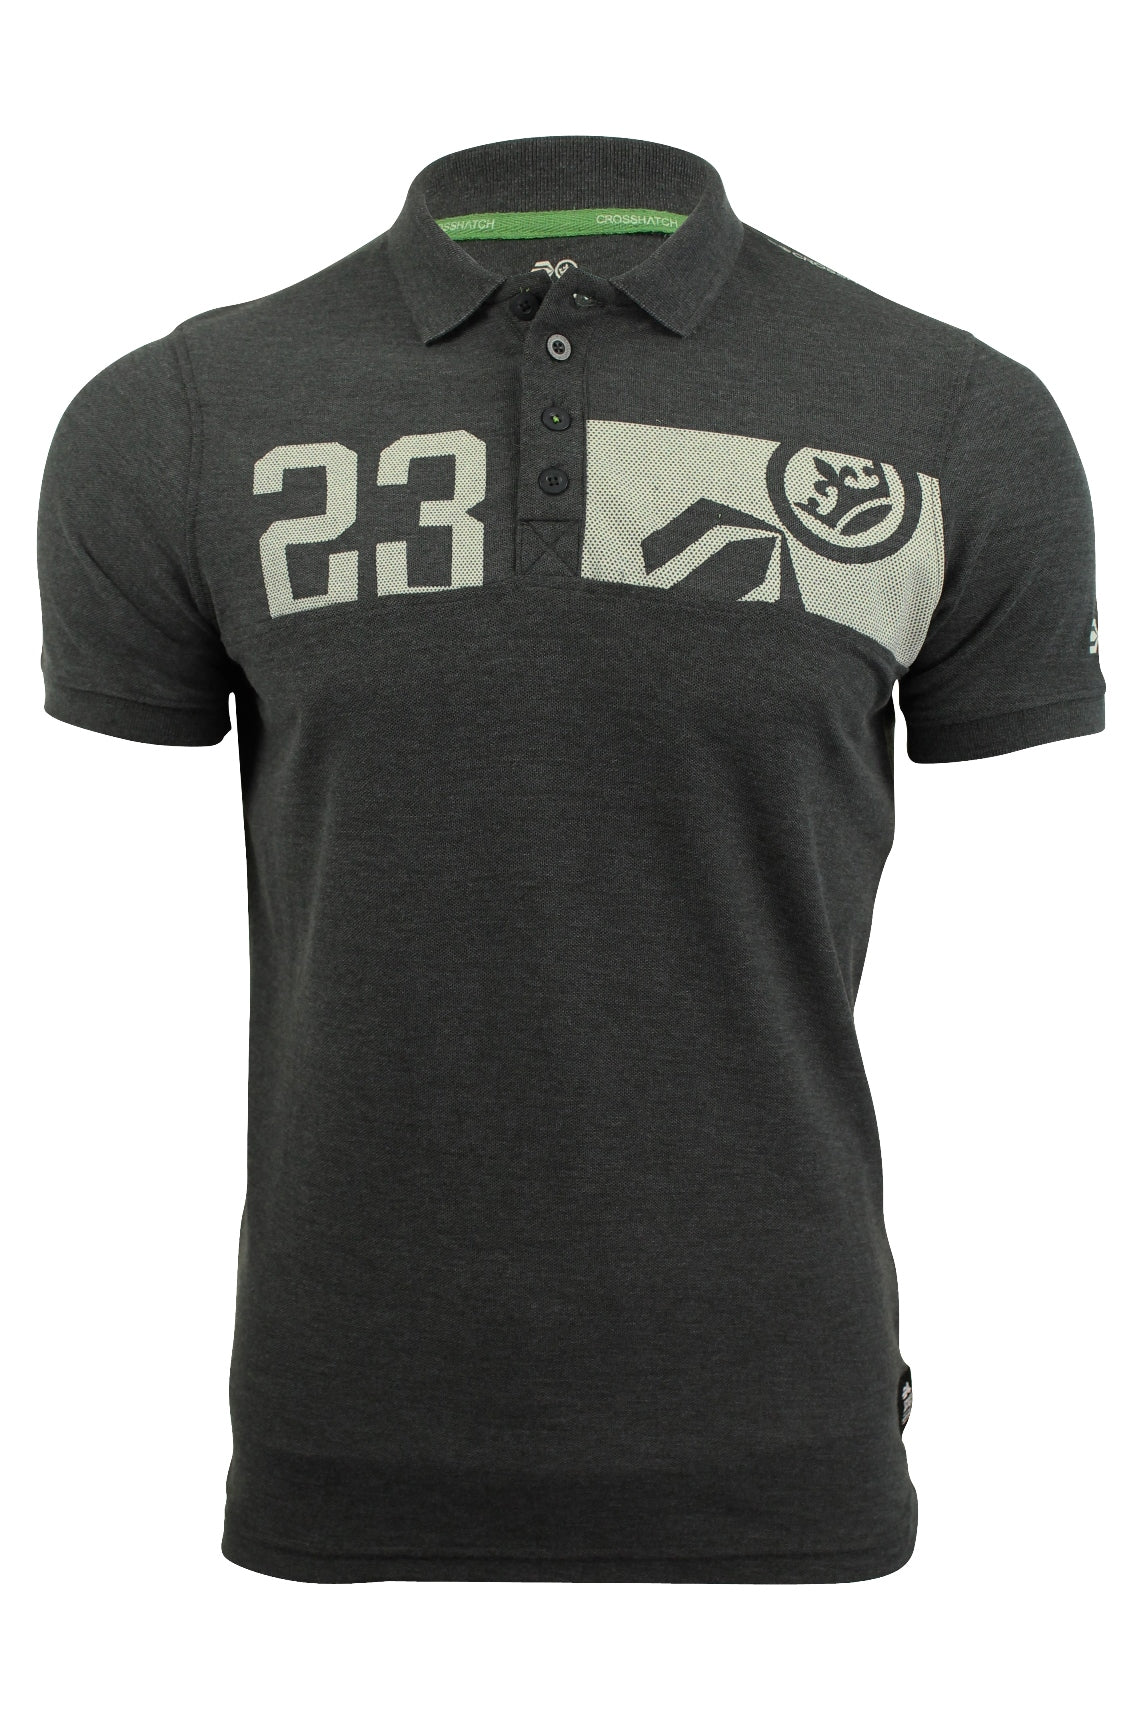 Mens Polo T-Shirt by Crosshatch Short Sleeved-Main Image